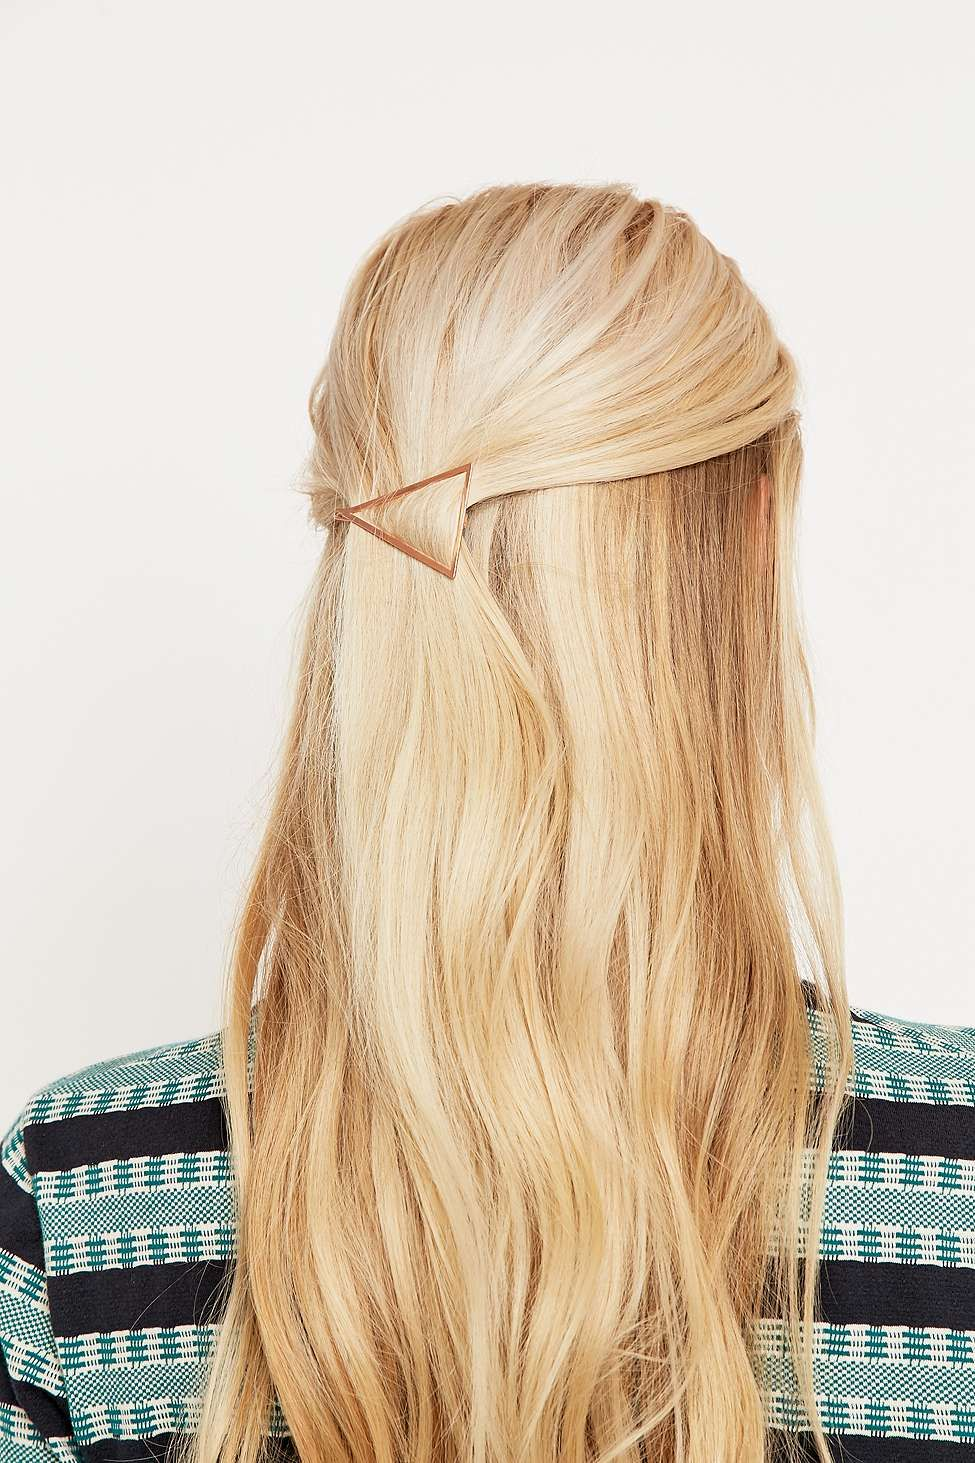 Clean Rose Gold Triangle Hair Clip Coiffures cool